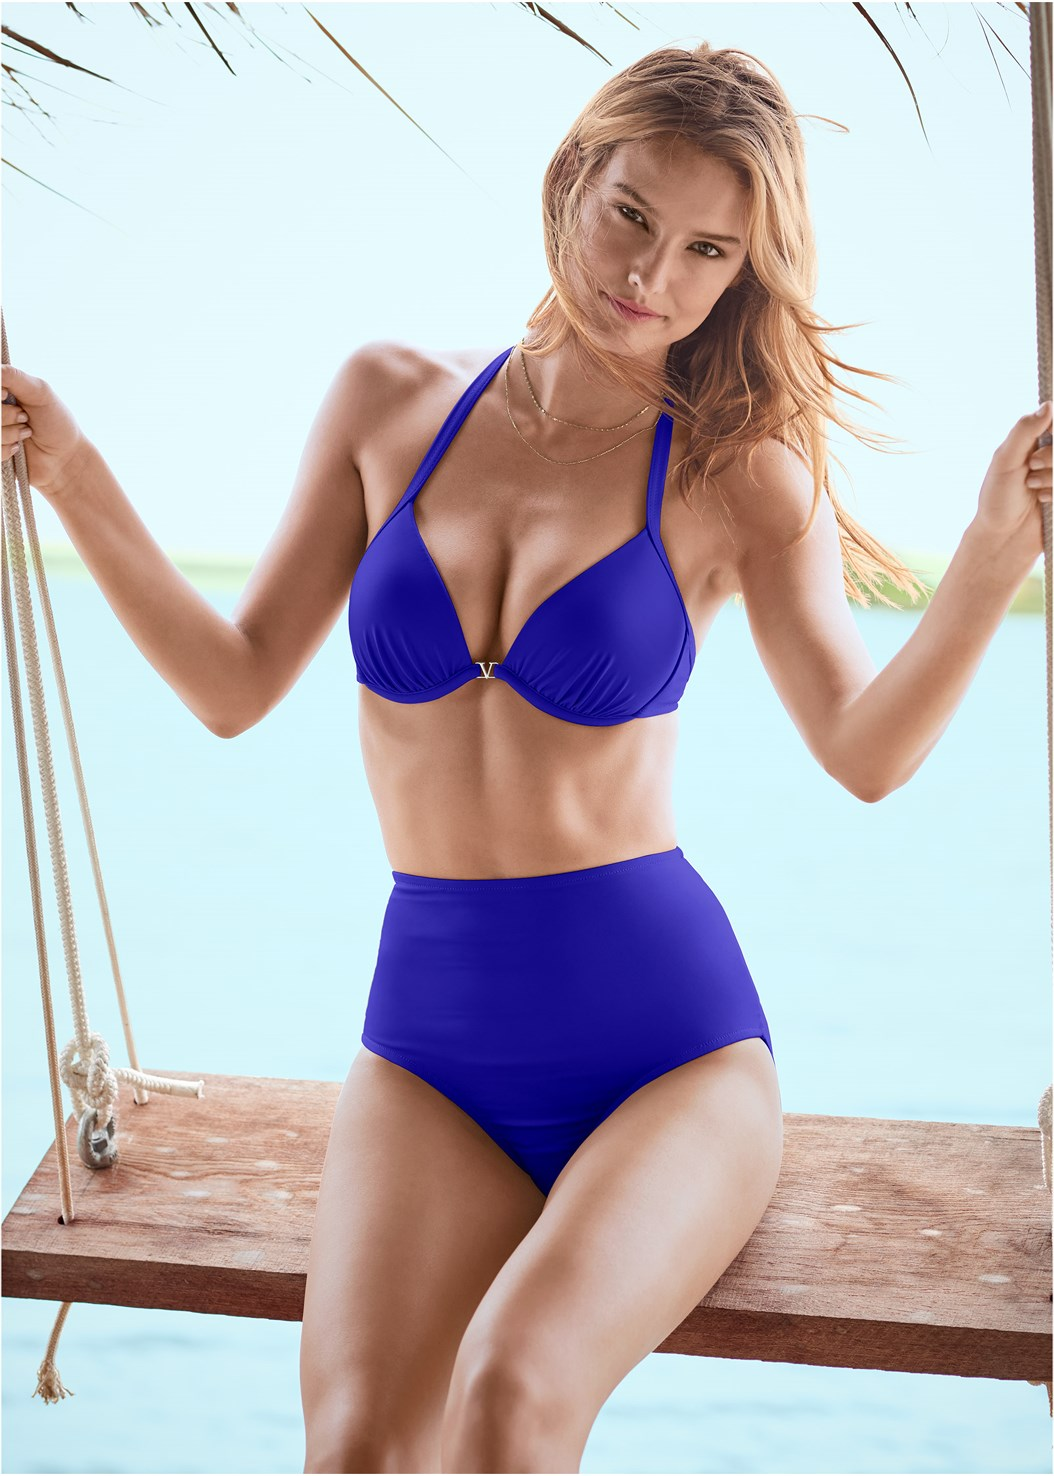 Venus Enhancer Halter Top,Scoop Front Classic Bikini Bottom ,Mid Rise Strappy Bottom,Off The Shoulder Cover-Up